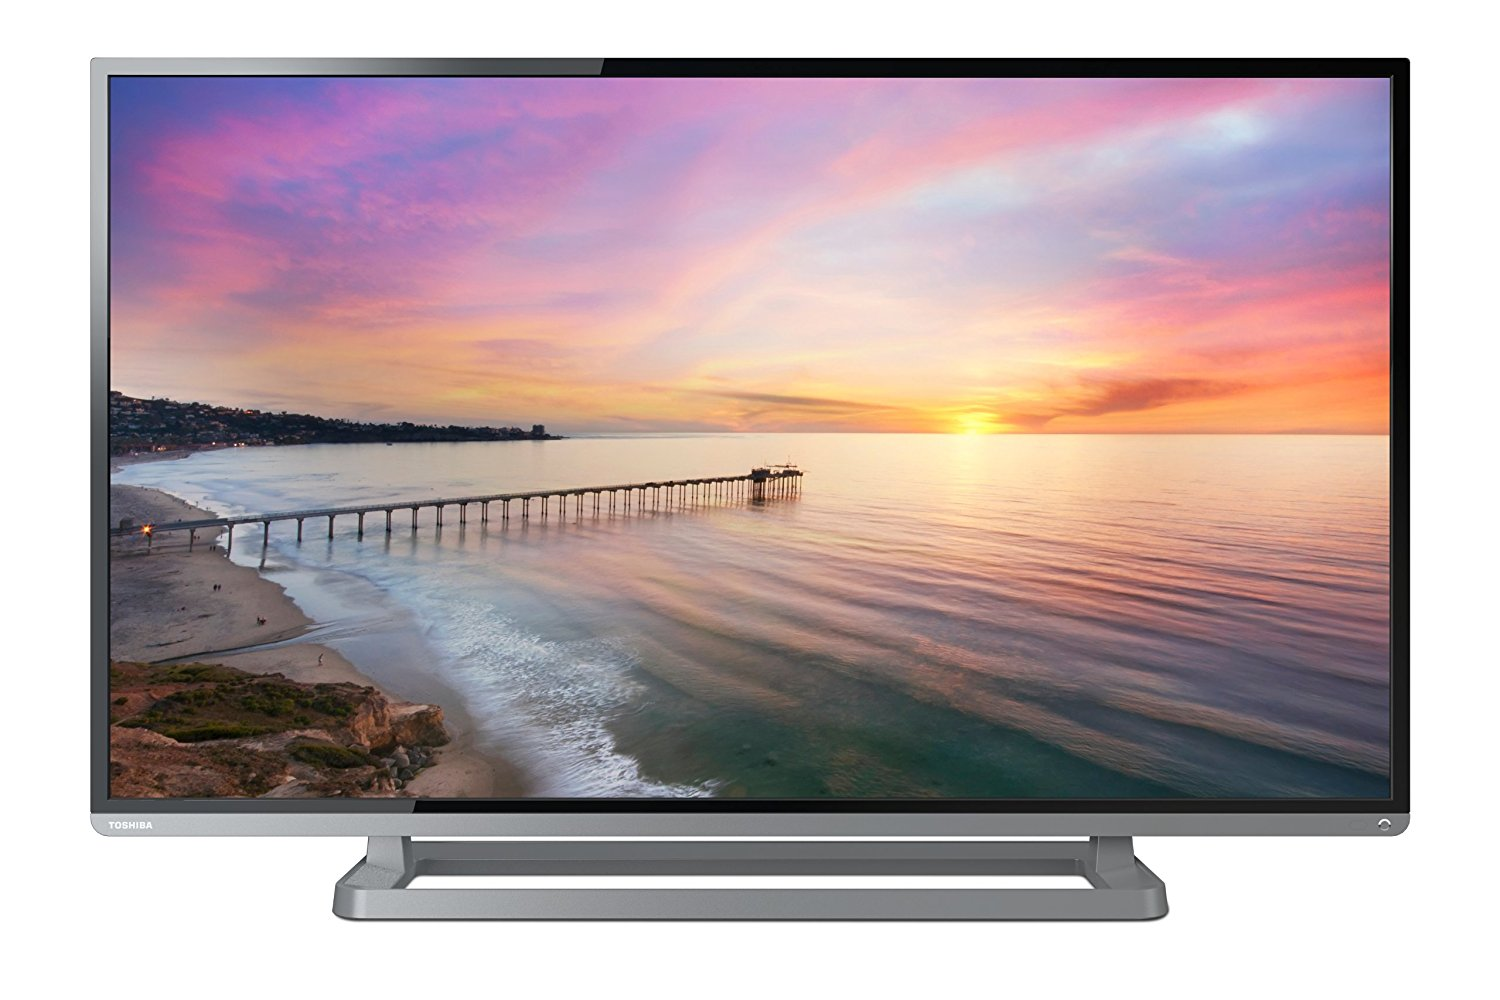 40 Inch Smart Tv Deals Cheap Price Of 40 Inch Led Tv Find Price Of 40 Inch Led Tv Deals